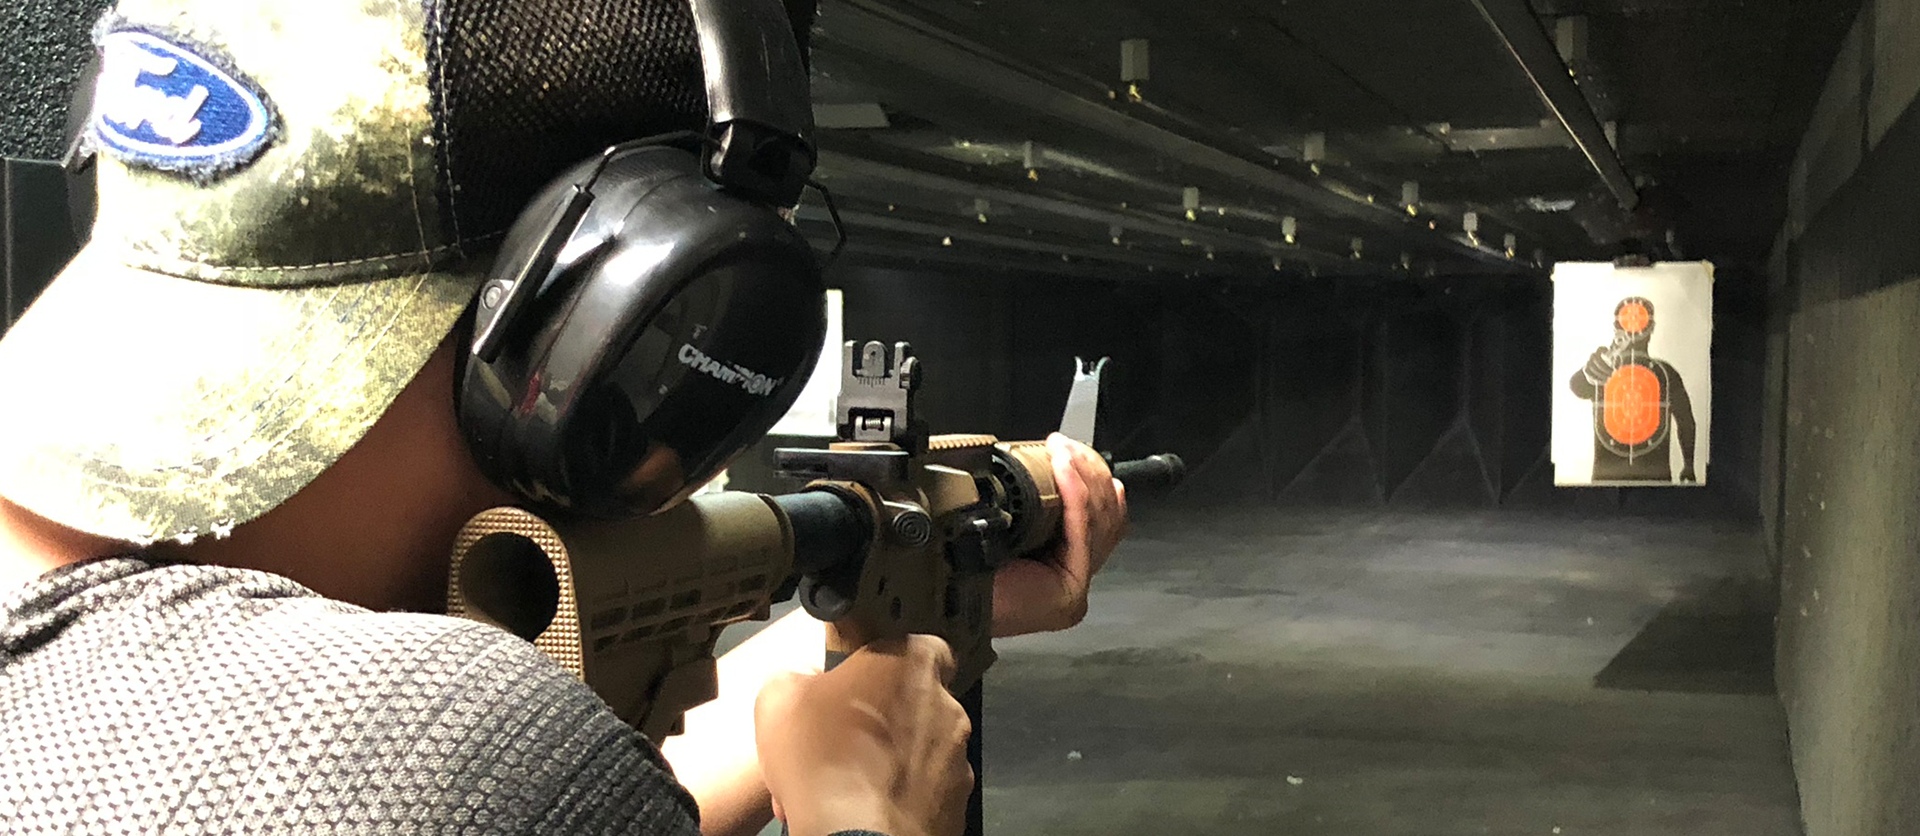 Shooter shooting with AR15 at Timberline Firearms